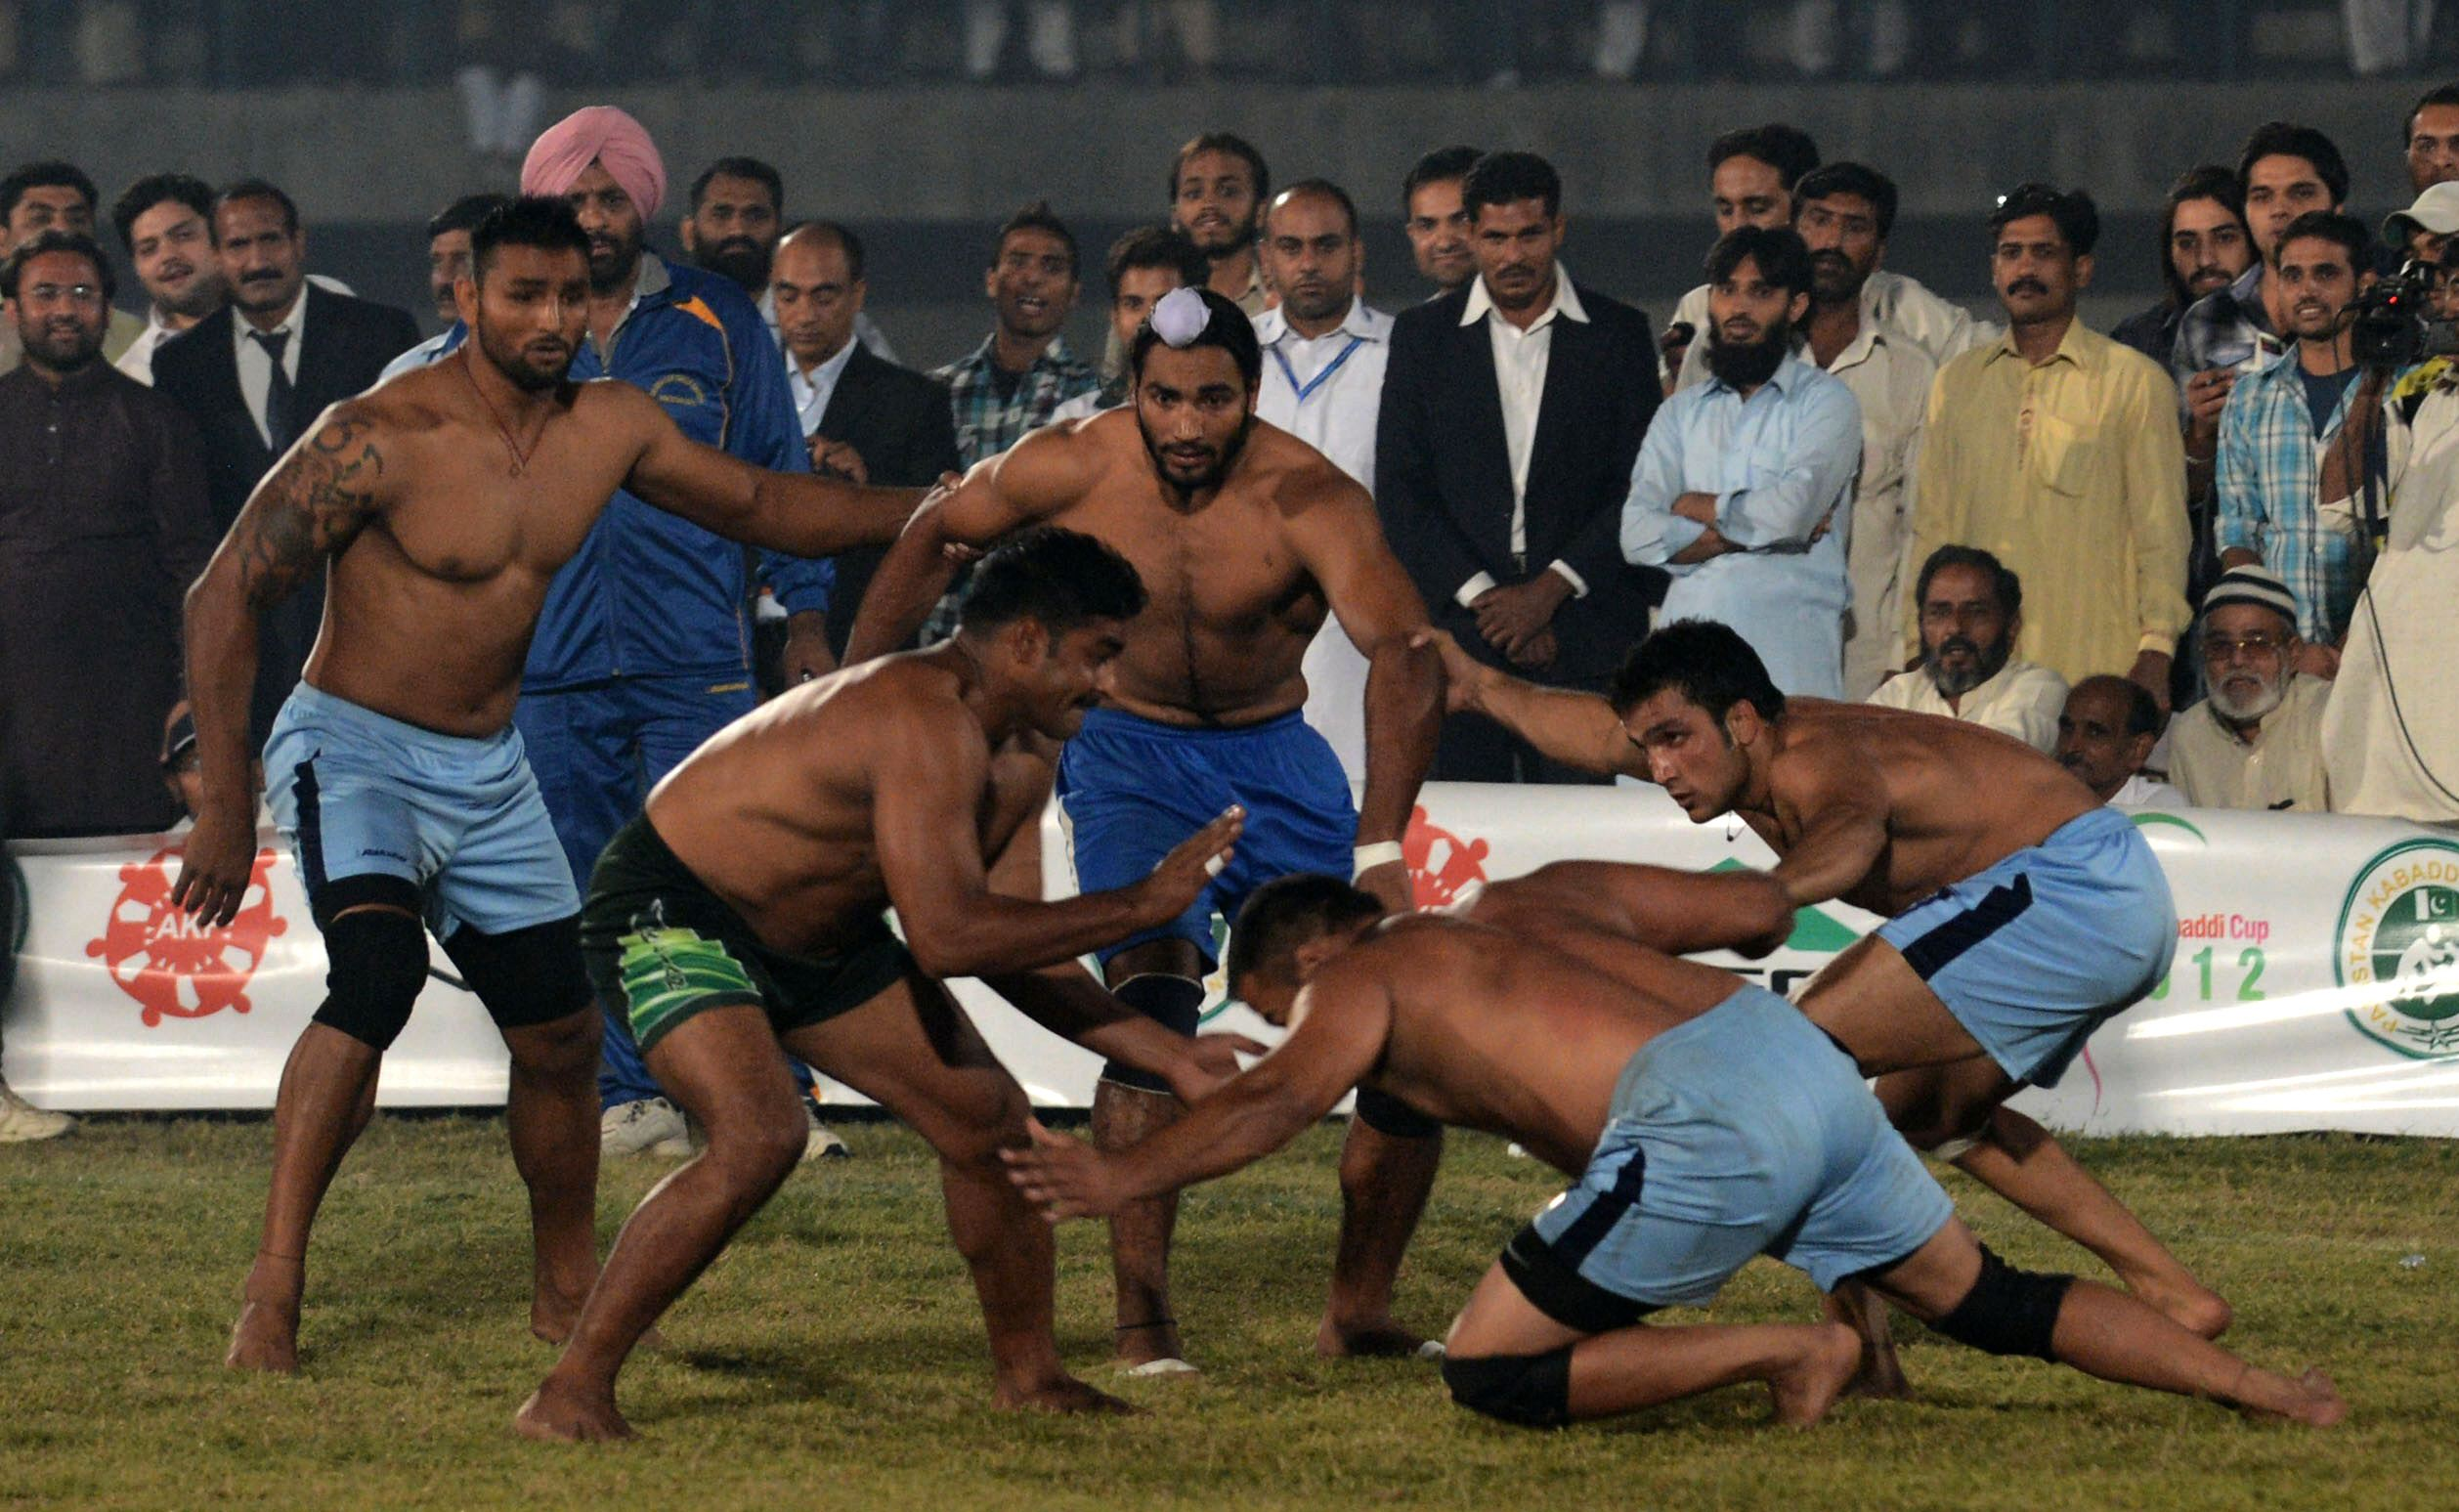 traditional sports regain popularity amid covid pandemic in punjab